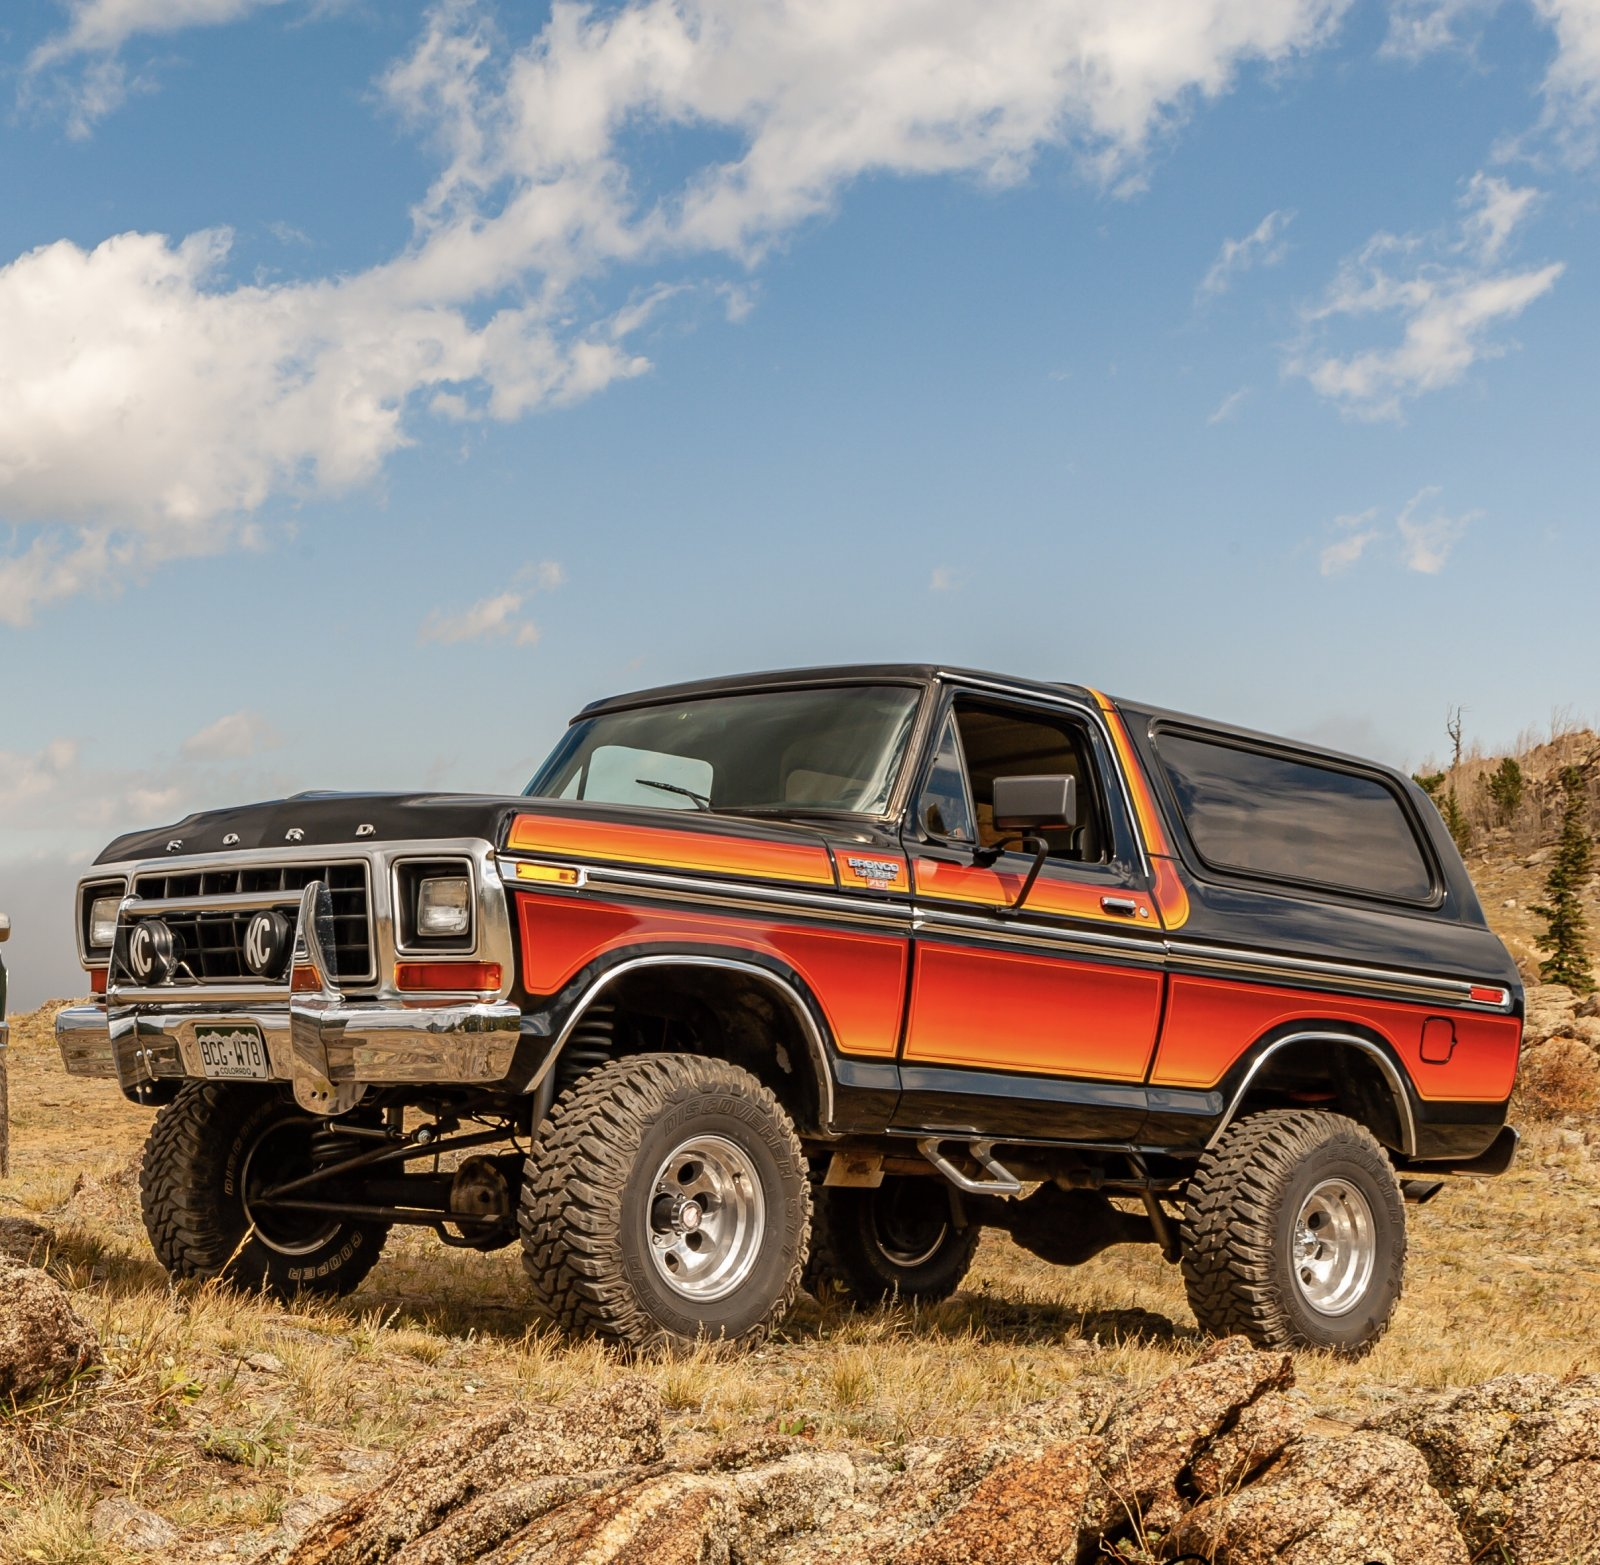 1979 Ford Bronco Ranger XLT - For Sale 5.jpg